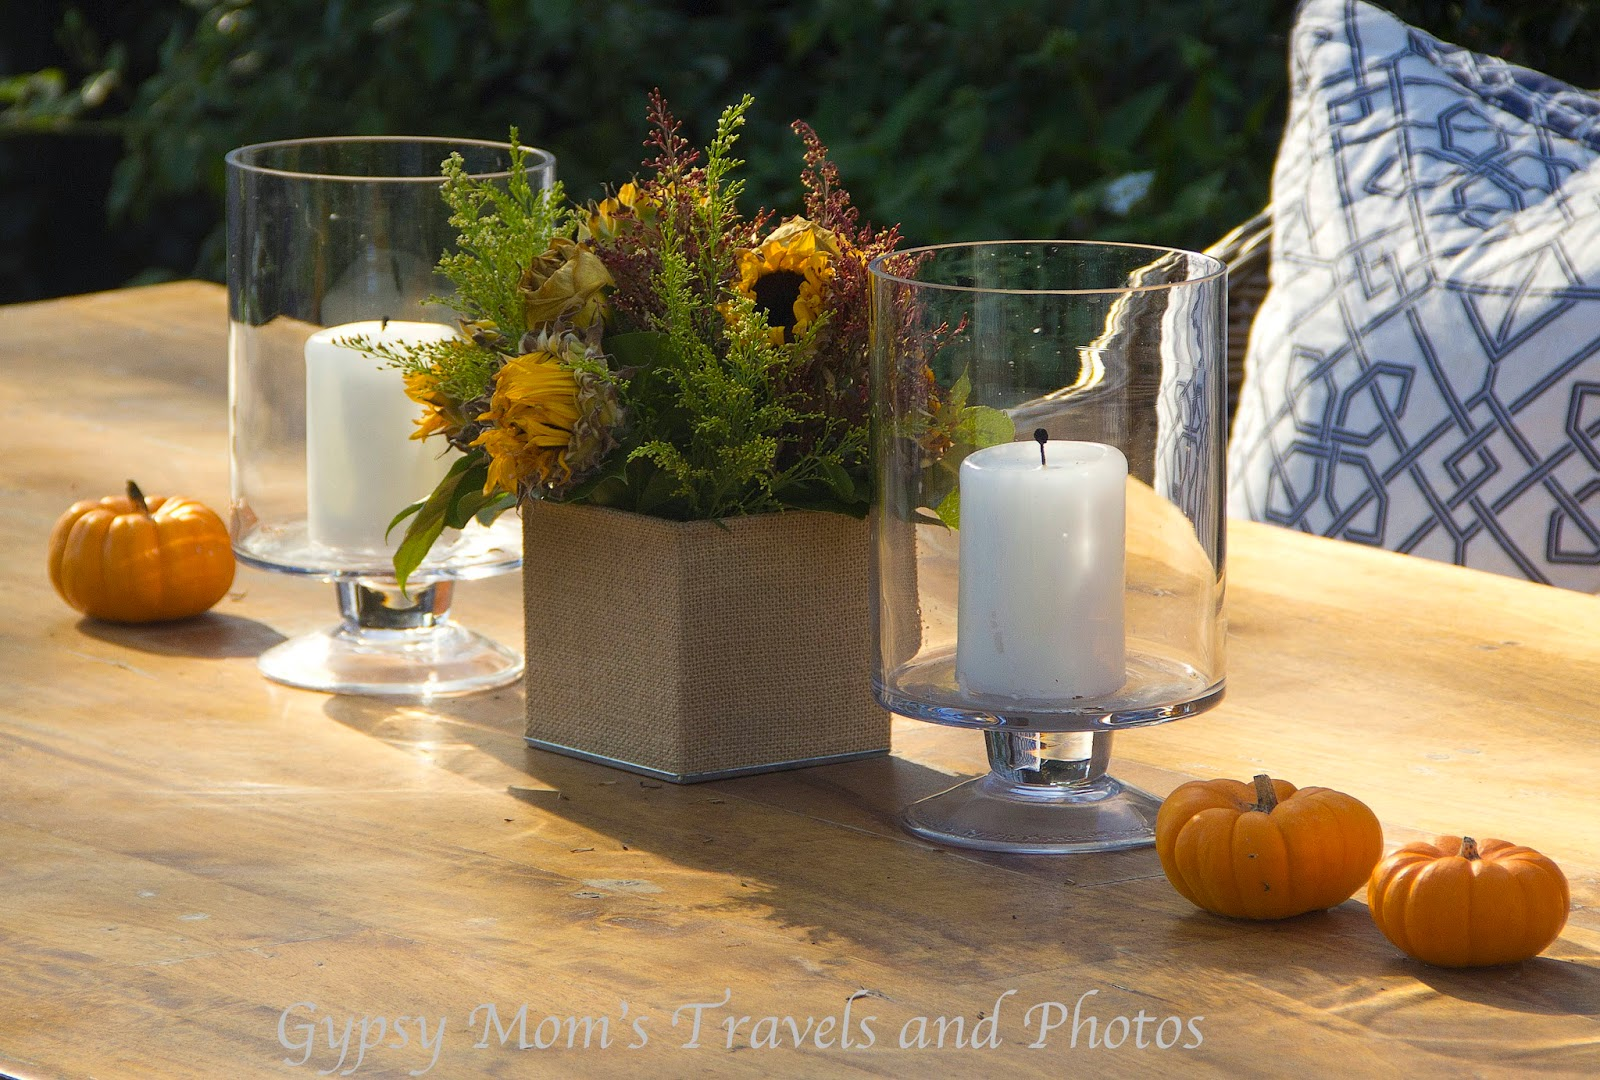 Fall decorations on a table in the front yard of a house in Corona del Mar